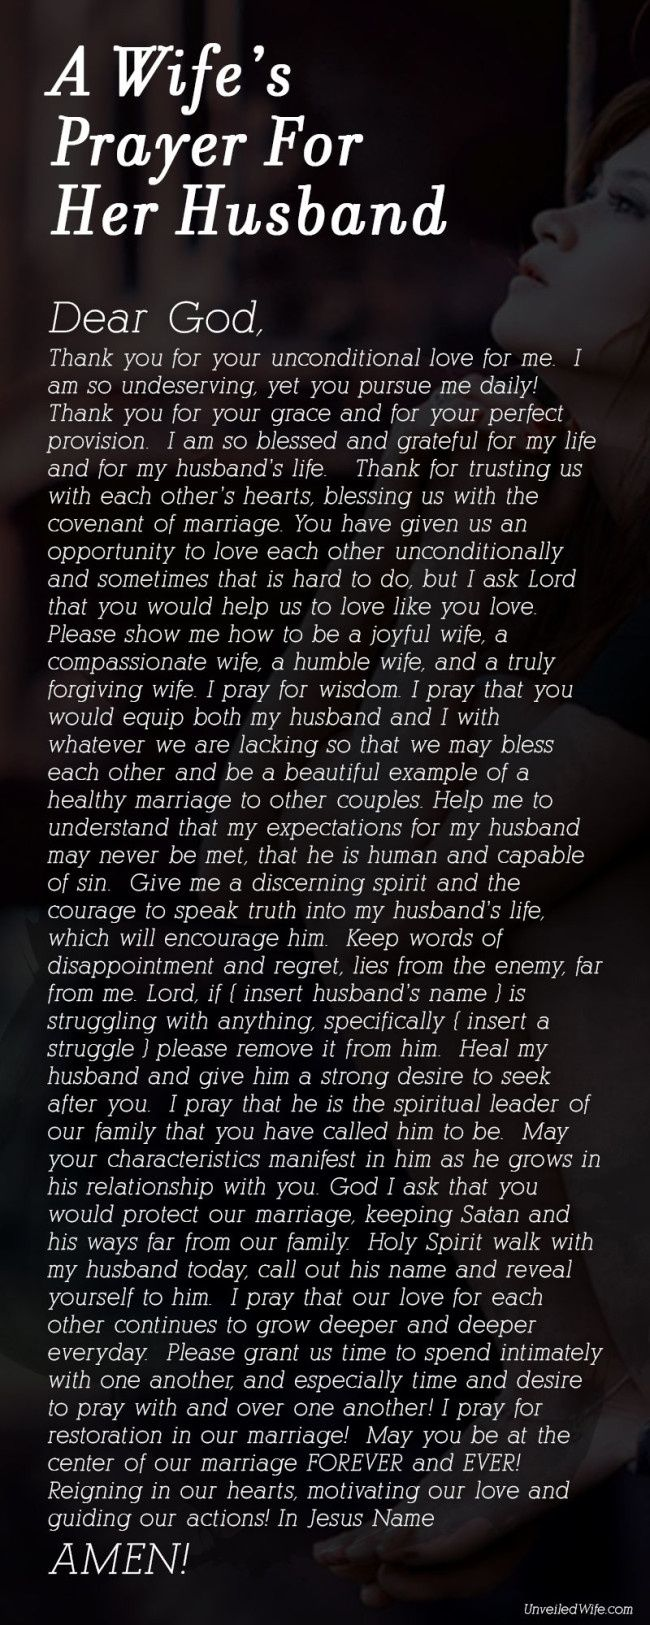 This wife's prayer for her husband from UnveiledWife.com is wonderfully intimate and inspiring. Wives, come read and pray!